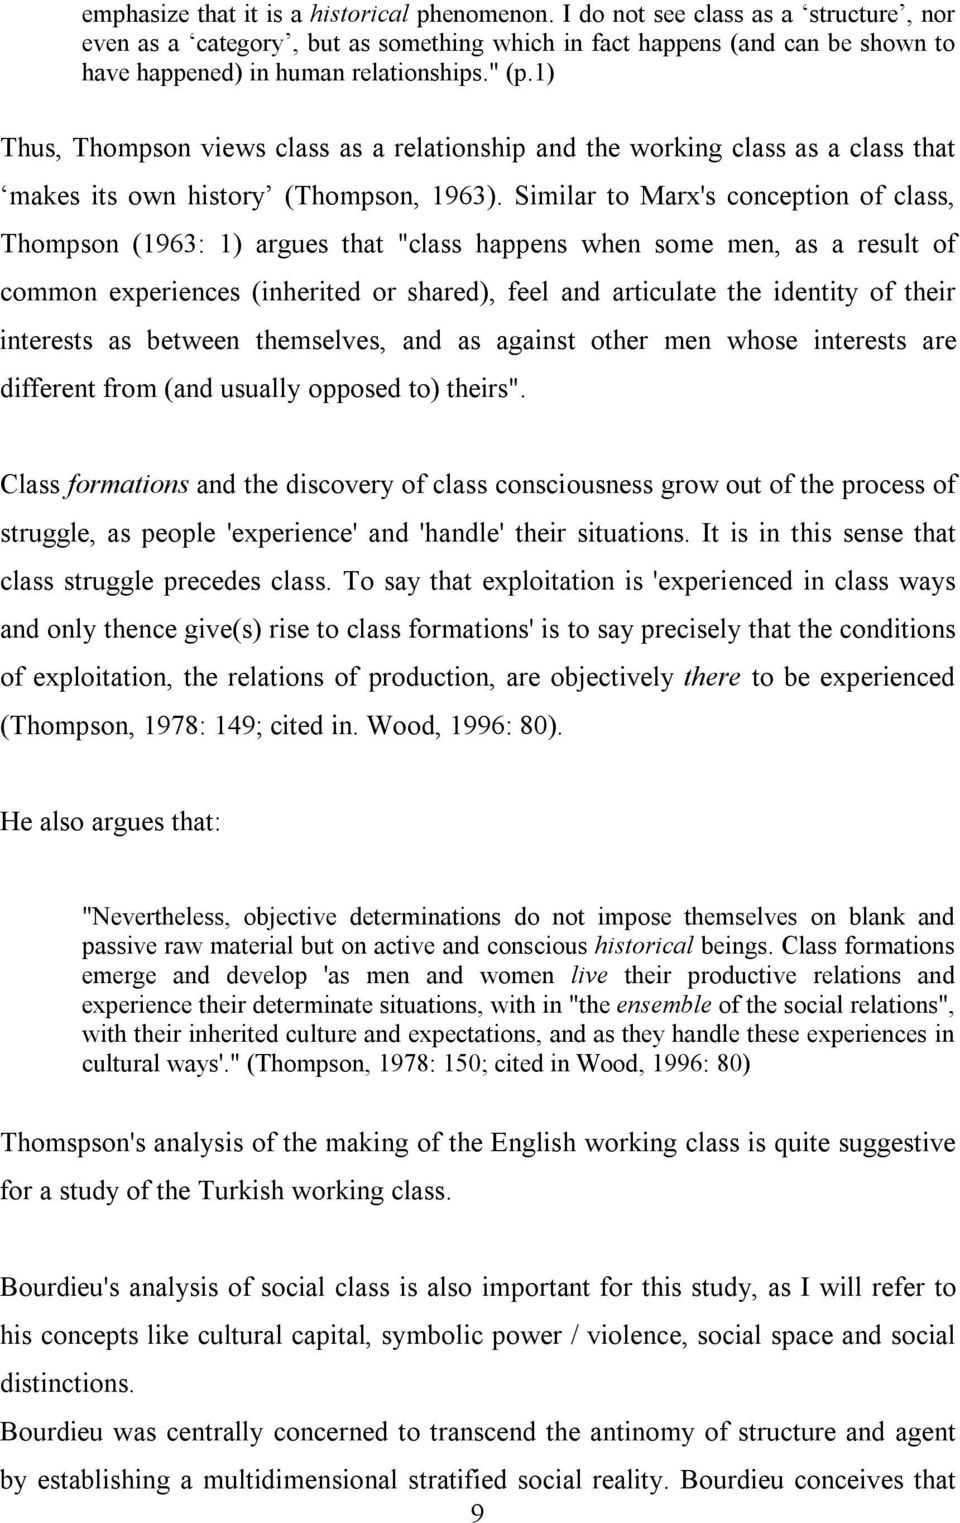 1) Thus, Thompson views class as a relationship and the working class as a class that makes its own history (Thompson, 1963).